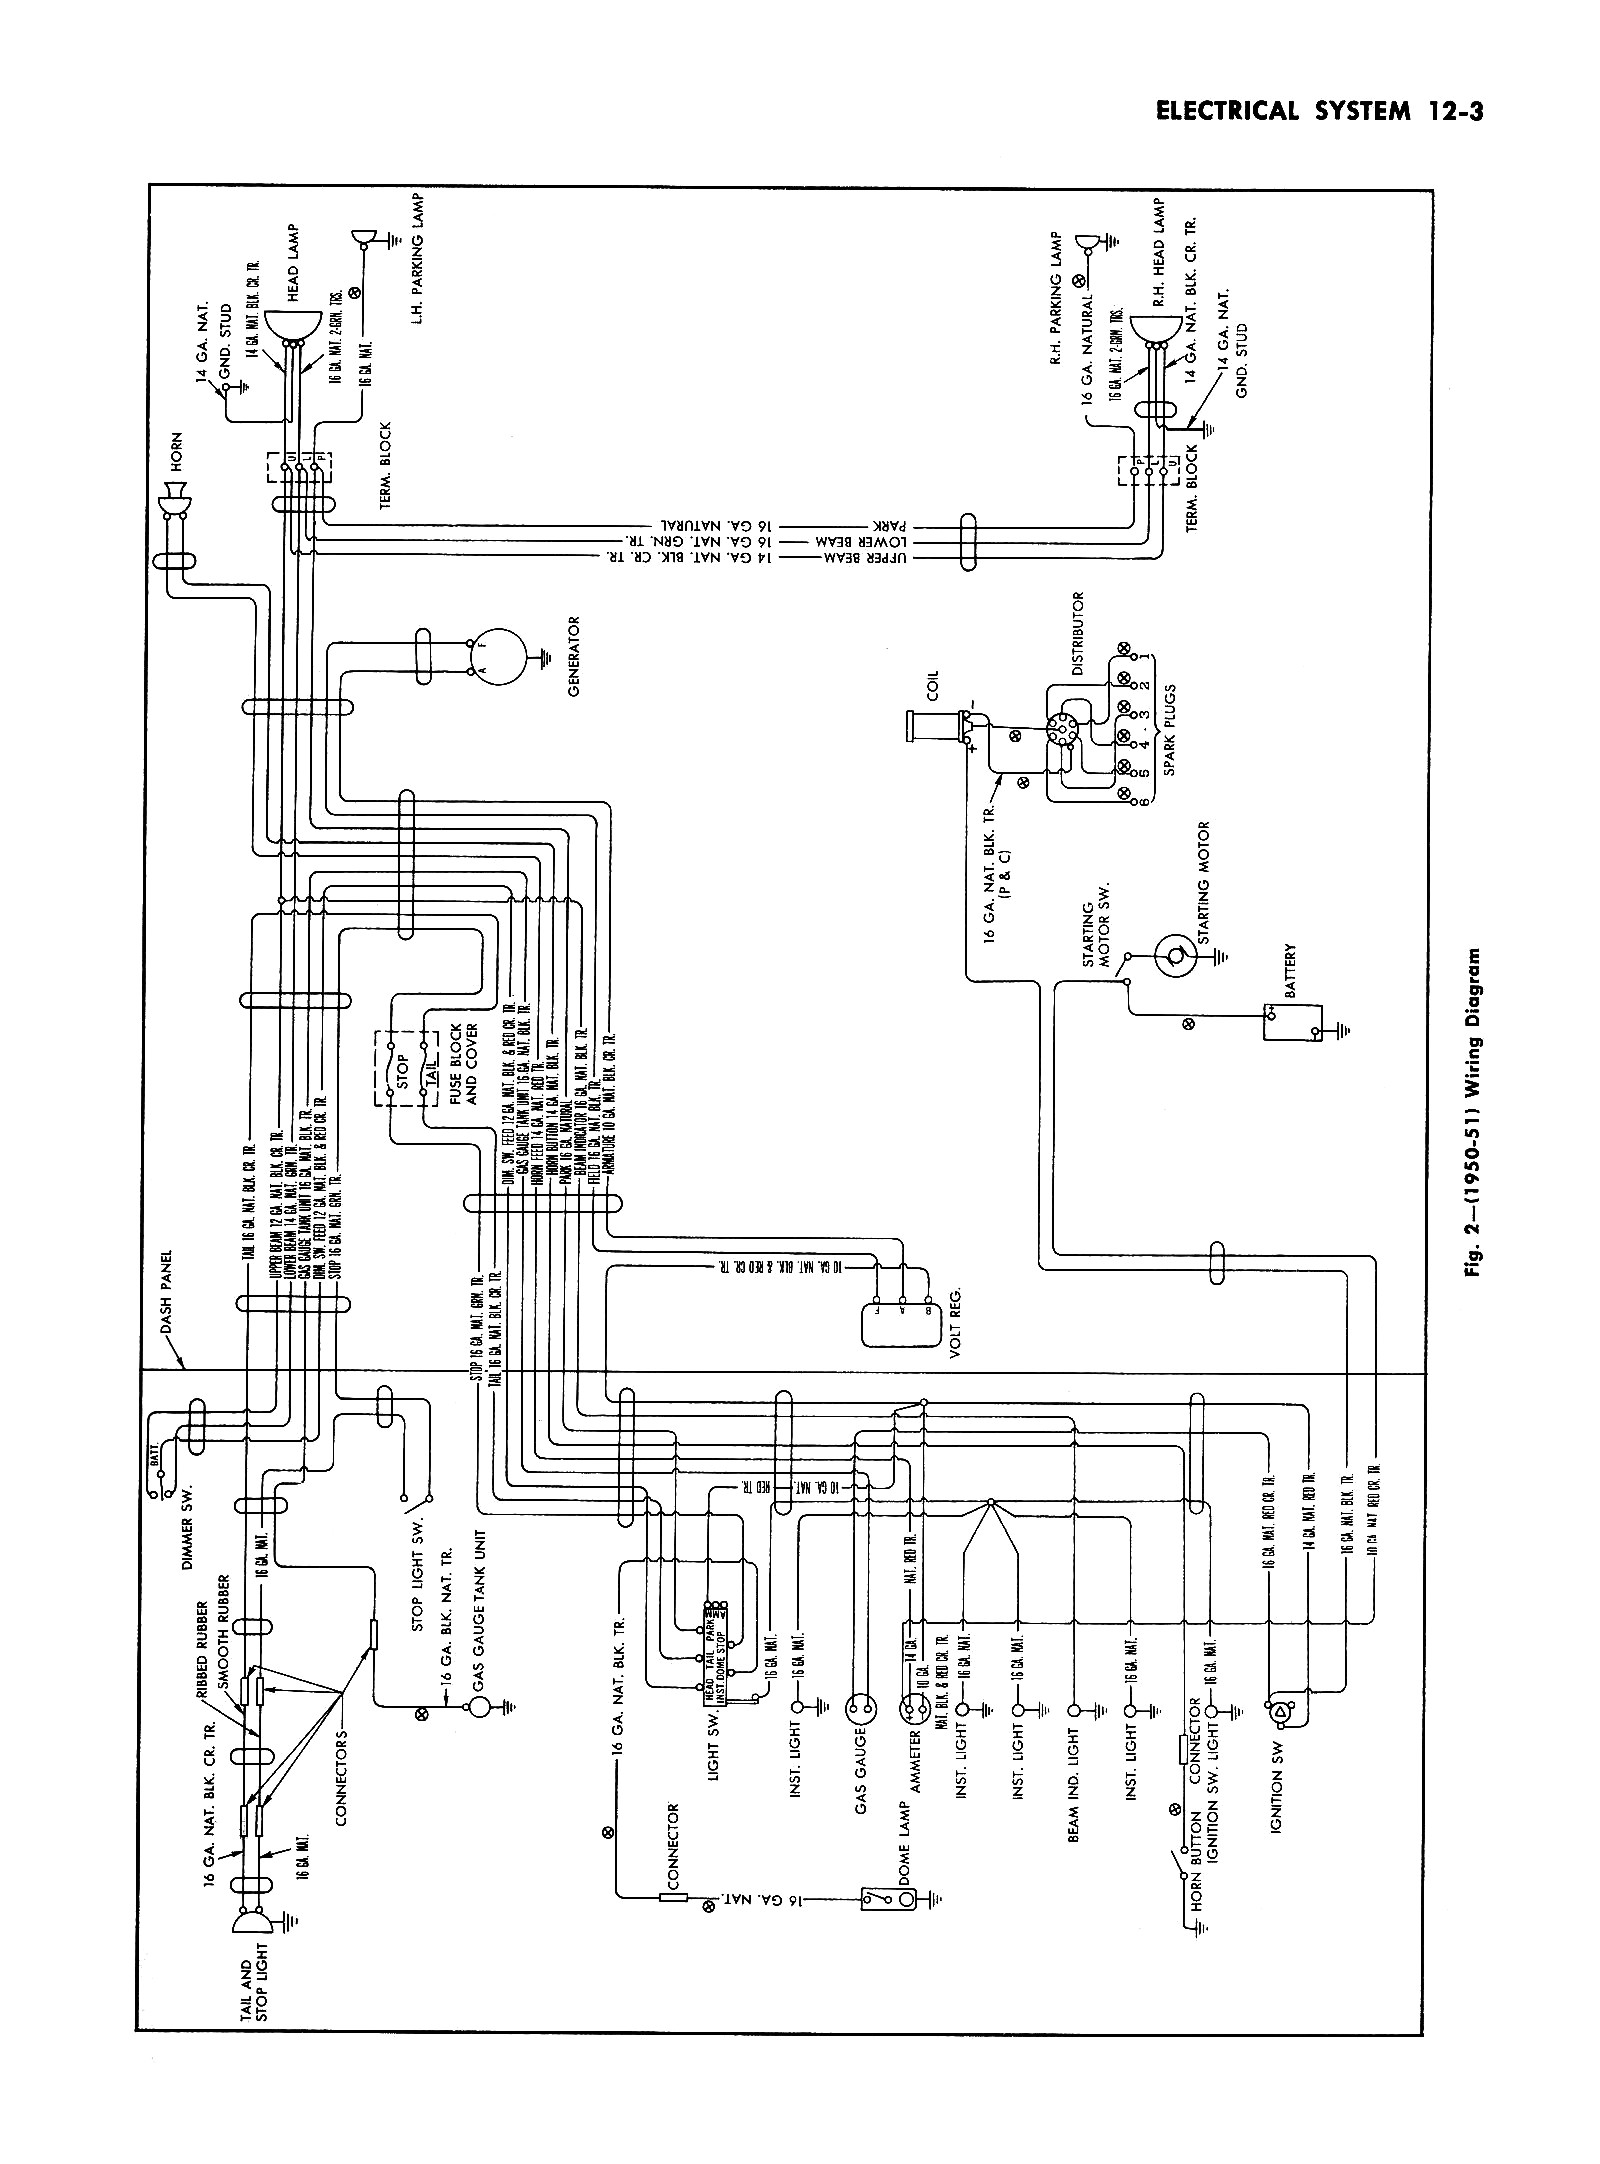 1251306 Looking For 51 F1 Wiring Schematic together with 70454 Ignition Actuator Replacement 85 W Tilt further 1982 Gmc Radio Wiring Diagram furthermore Showthread likewise 299281. on 1953 gmc pickup wiring diagram